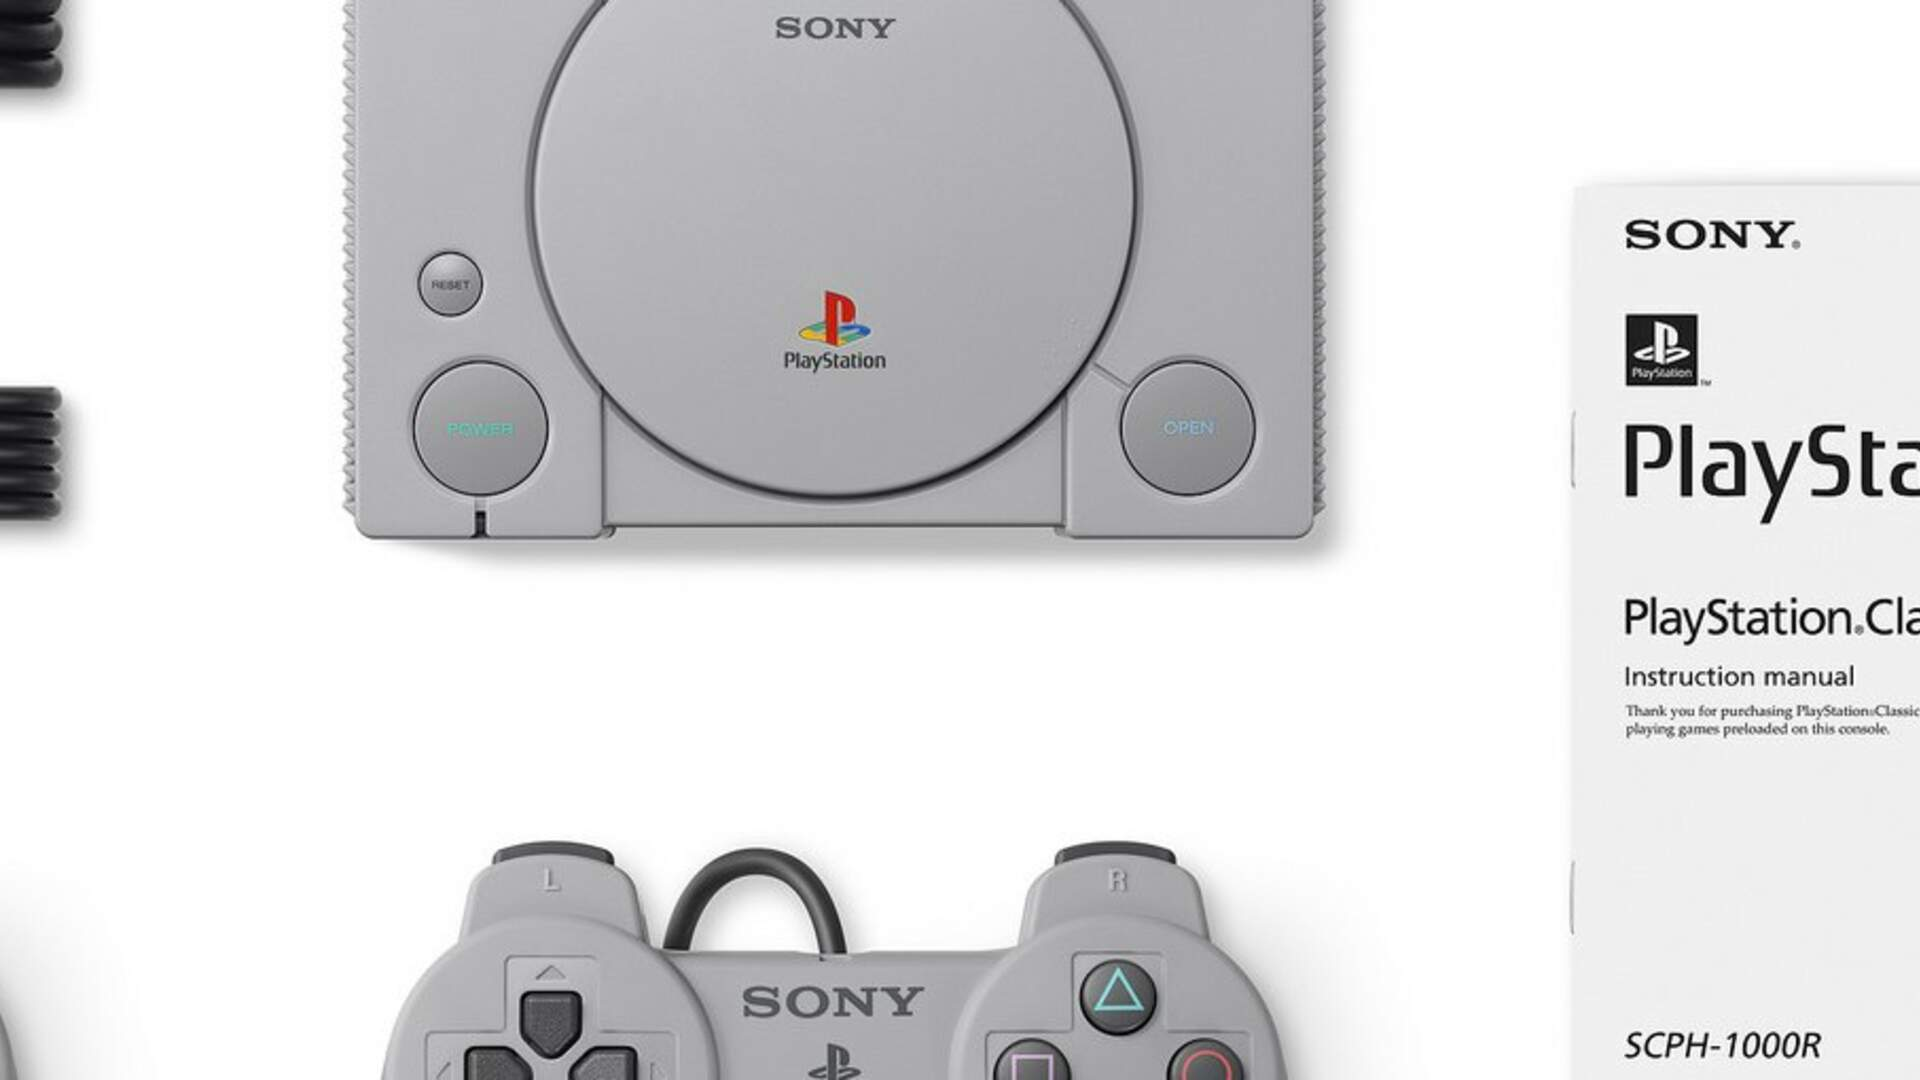 PlayStation Classic Uses an Open-Source Emulator to Play Games